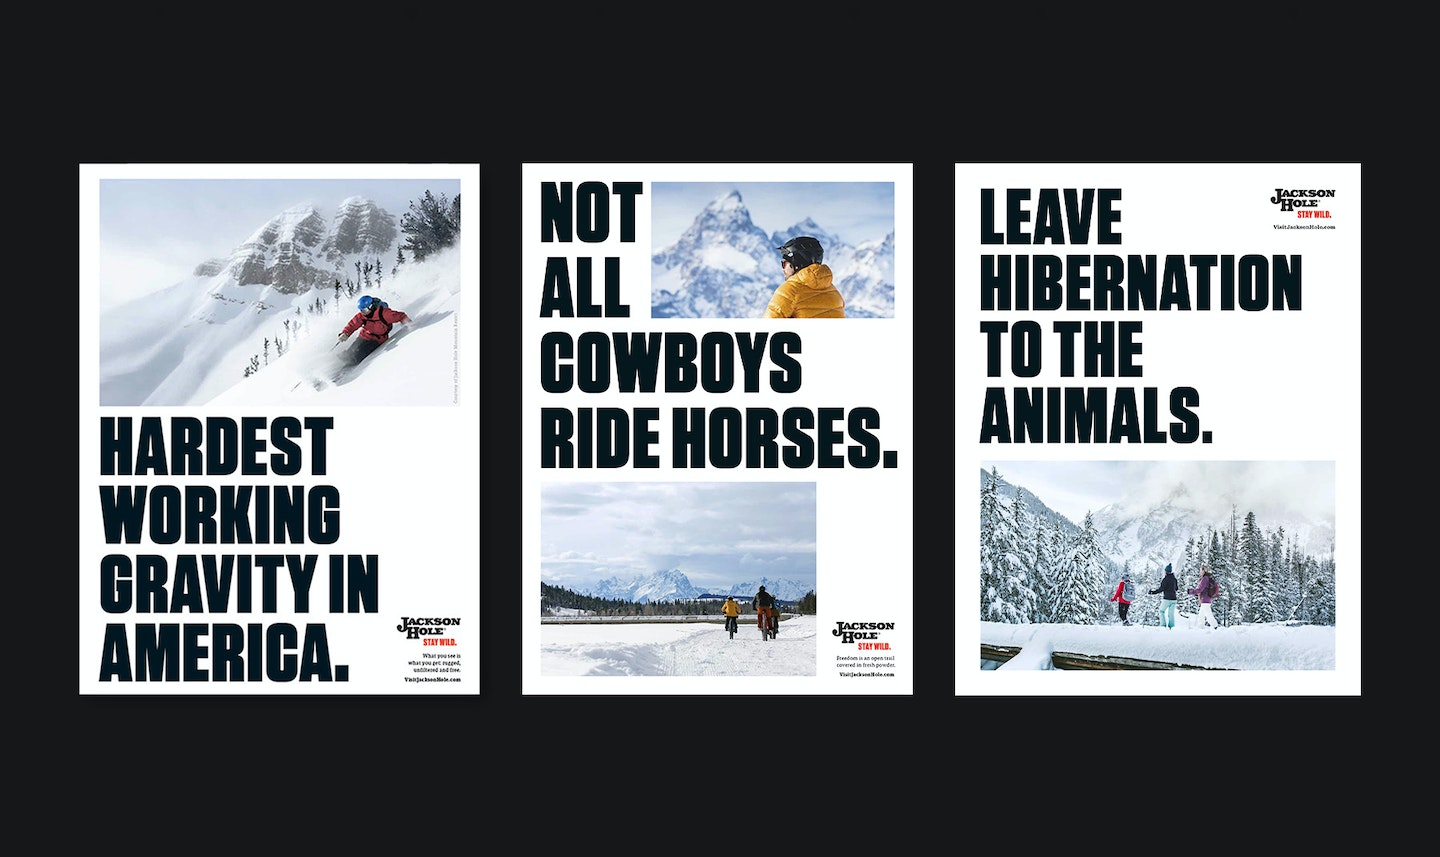 Jackson Hole Print Ads Update 2019